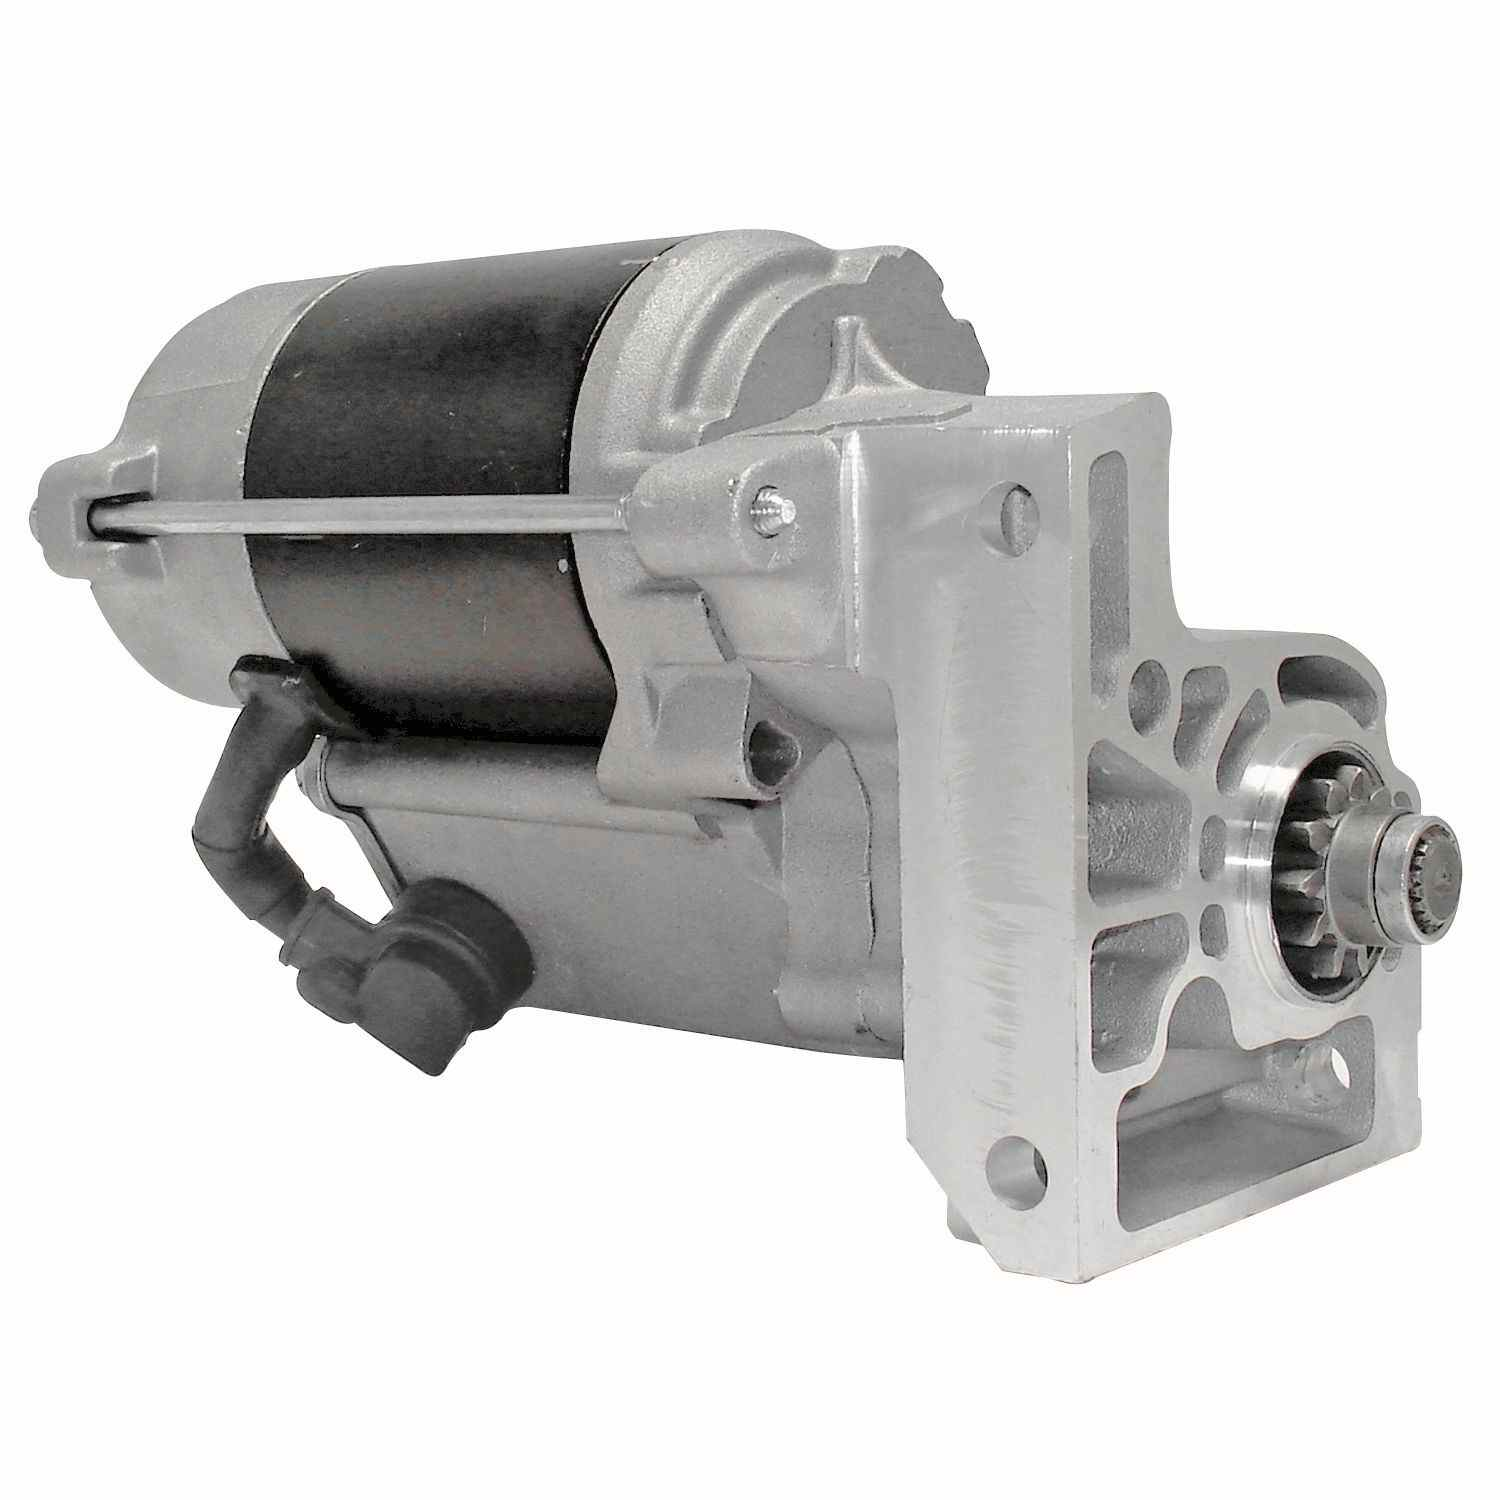 ACDELCO GOLD/PROFESSIONAL - Reman Starter Motor - DCC 336-1054